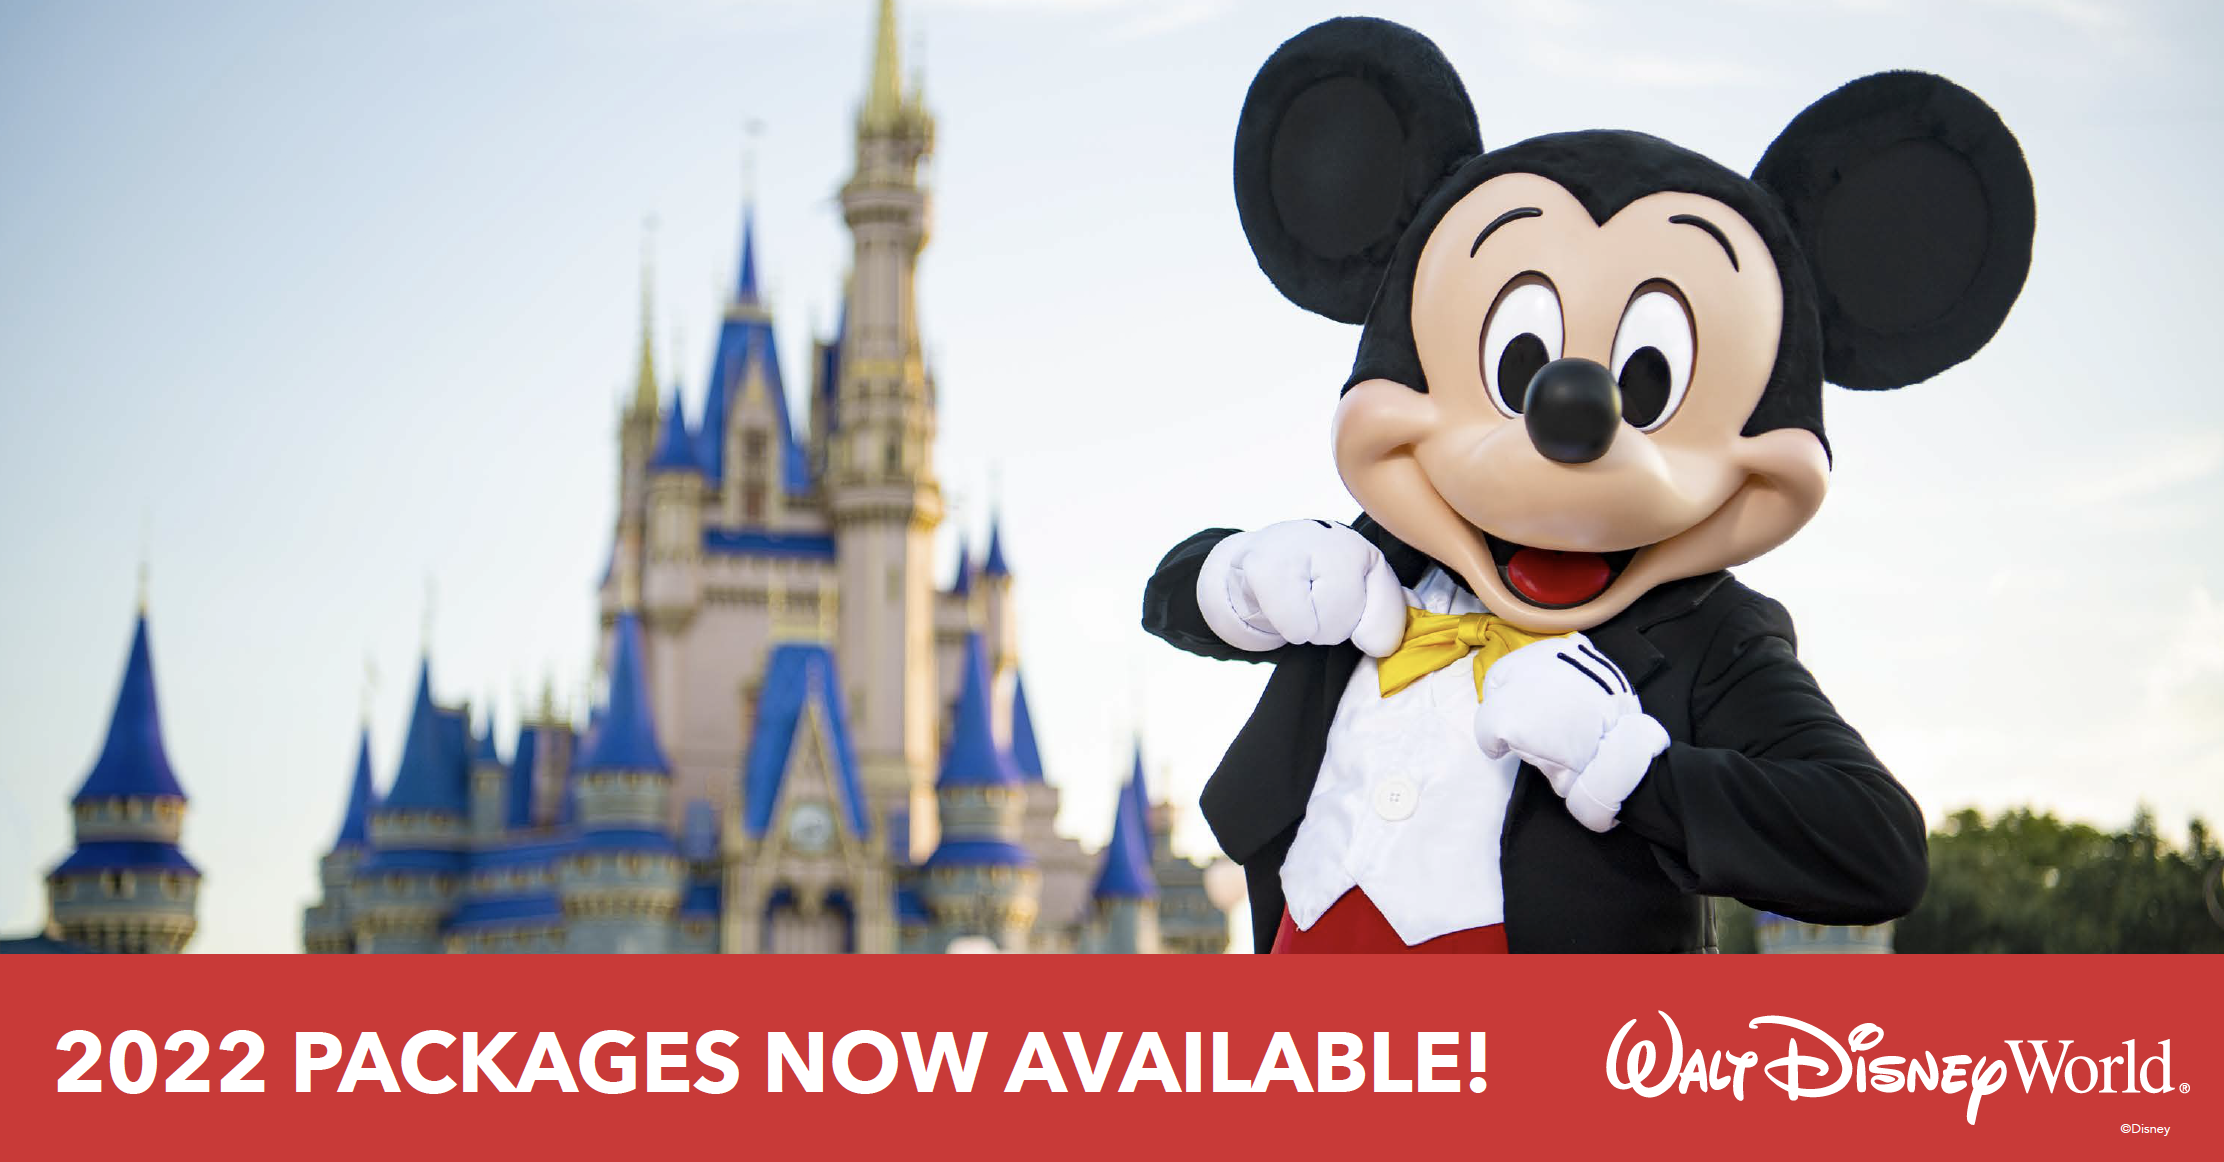 Walt Disney World Resort 2022 Vacation Packages Are Now Available!